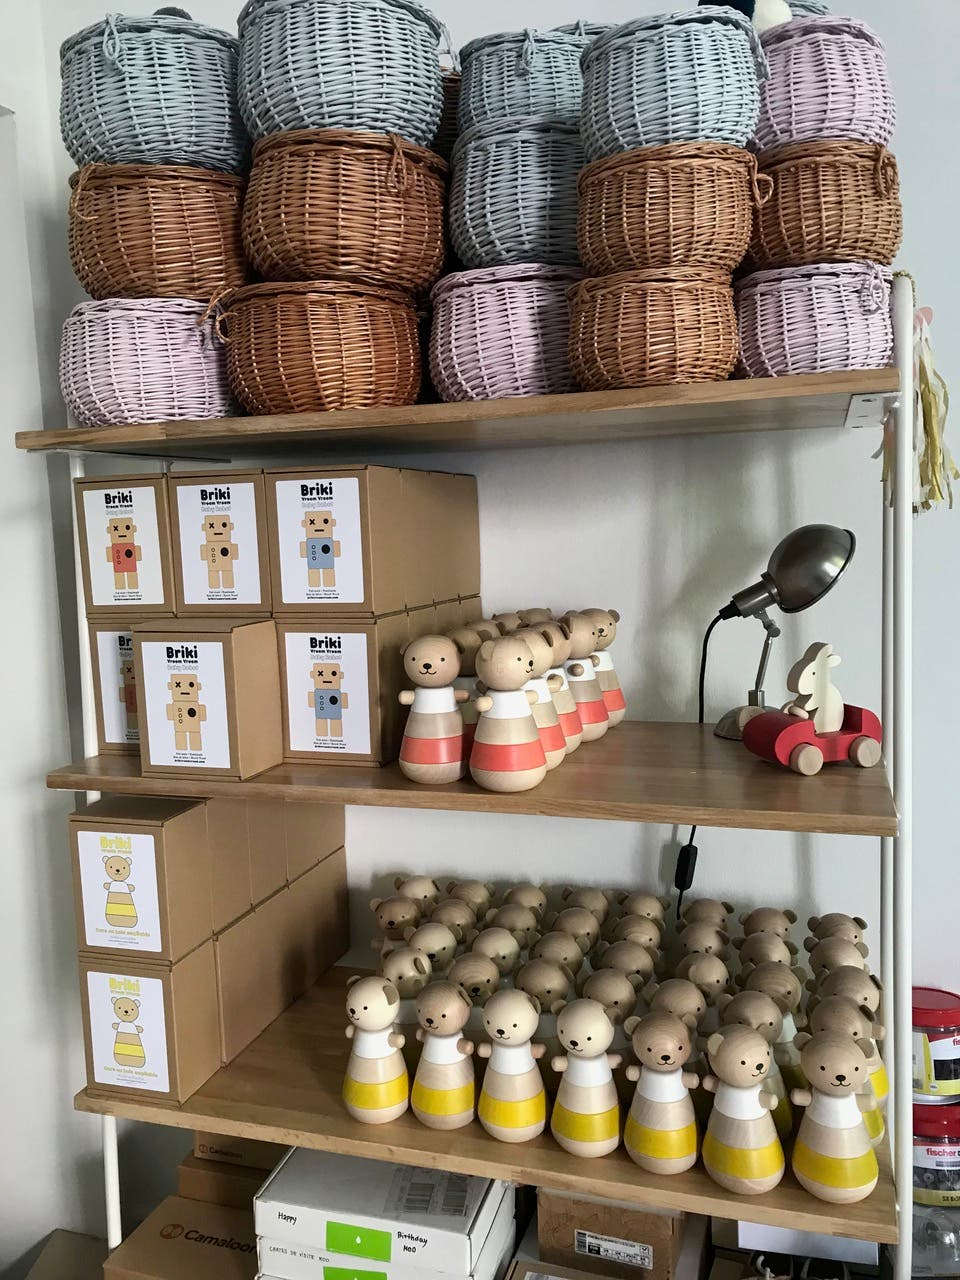 Shelf of wooden toys and baskets in the studio space for Briki Vroom Vroom